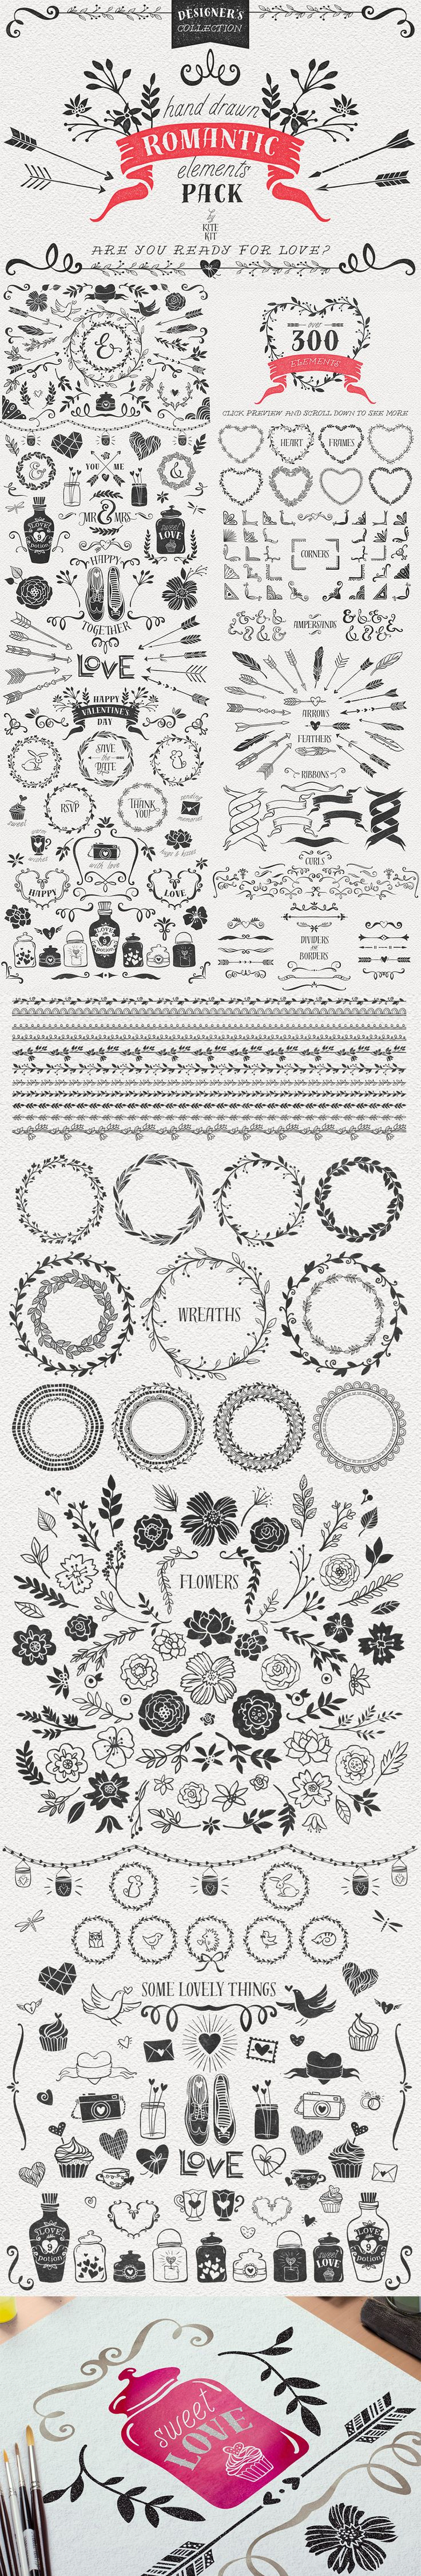 Hand Drawn Romantic Decoration Pack by Kite Kit | The Comprehensive, Creative Vectors Bundle Mar 2015 from Design Cuts